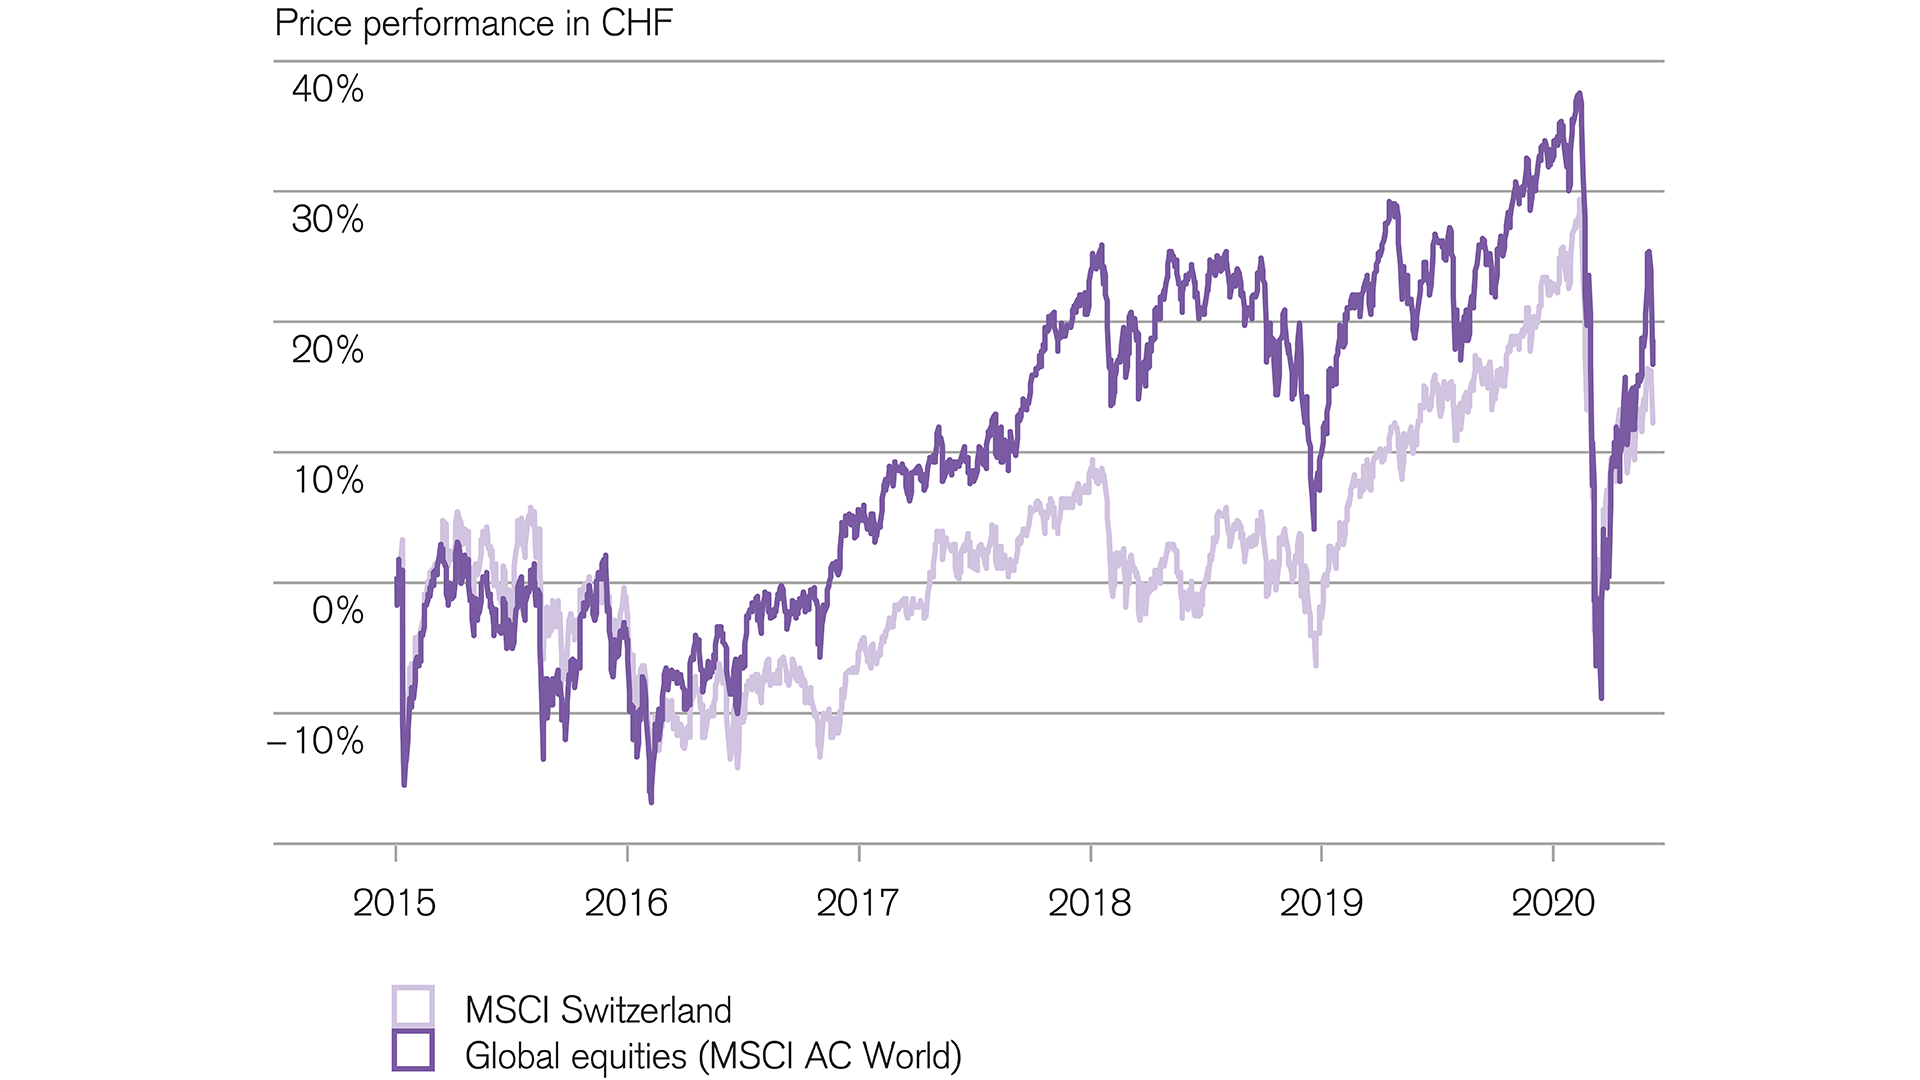 Swiss equities fluctuate less than the global index in times of crisis